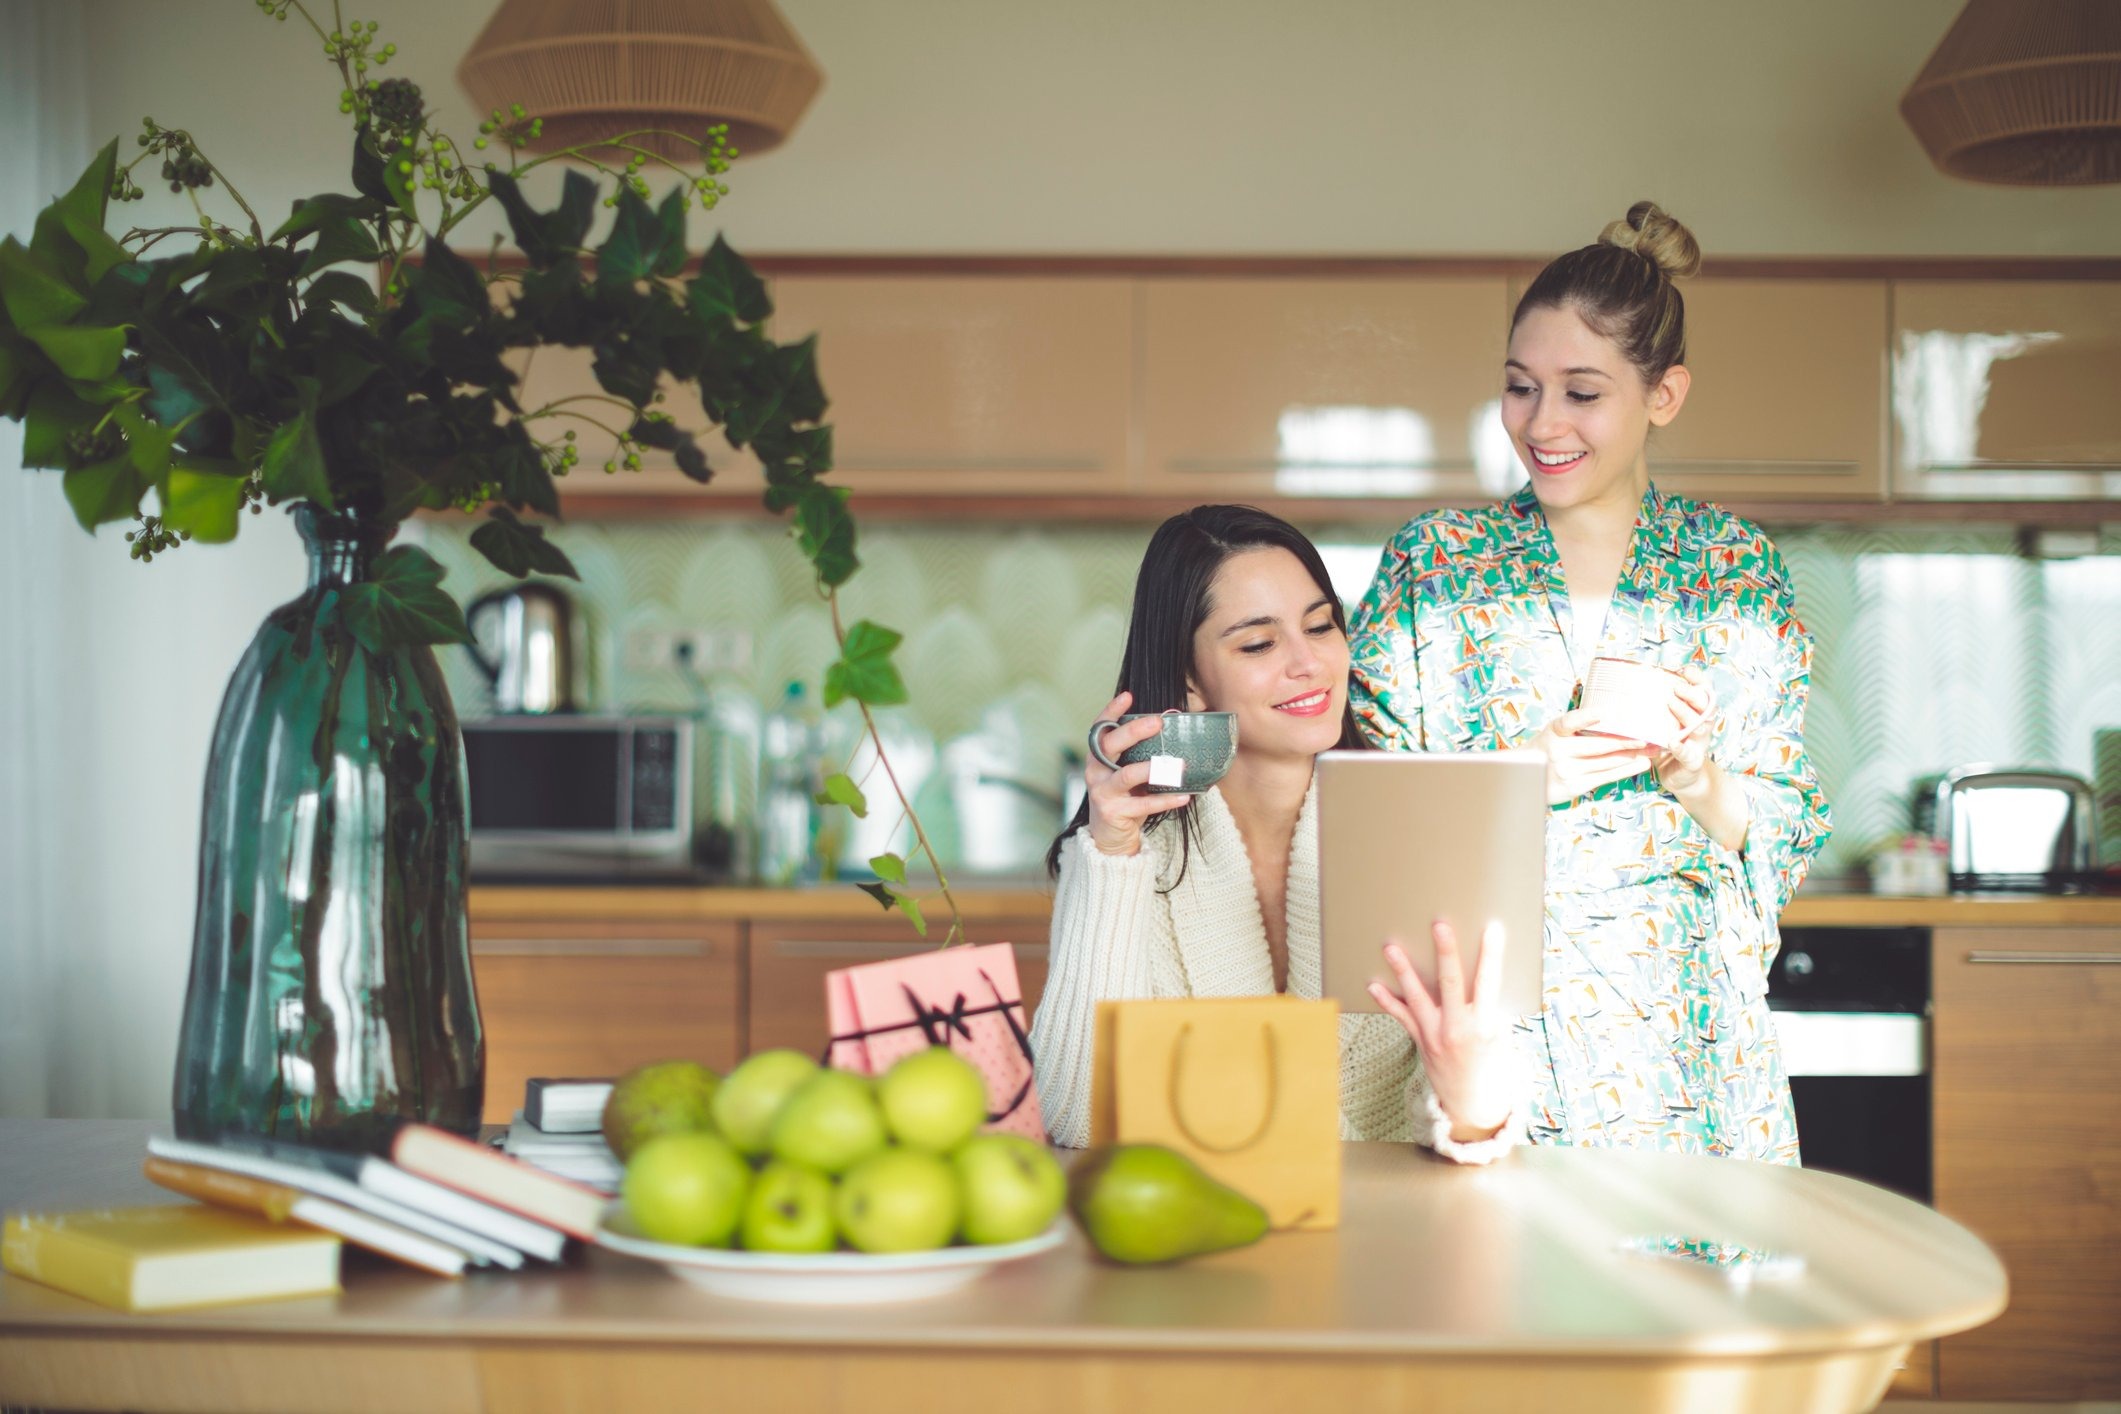 Tips on How to Pay Down Credit Card Balances & Spend Less